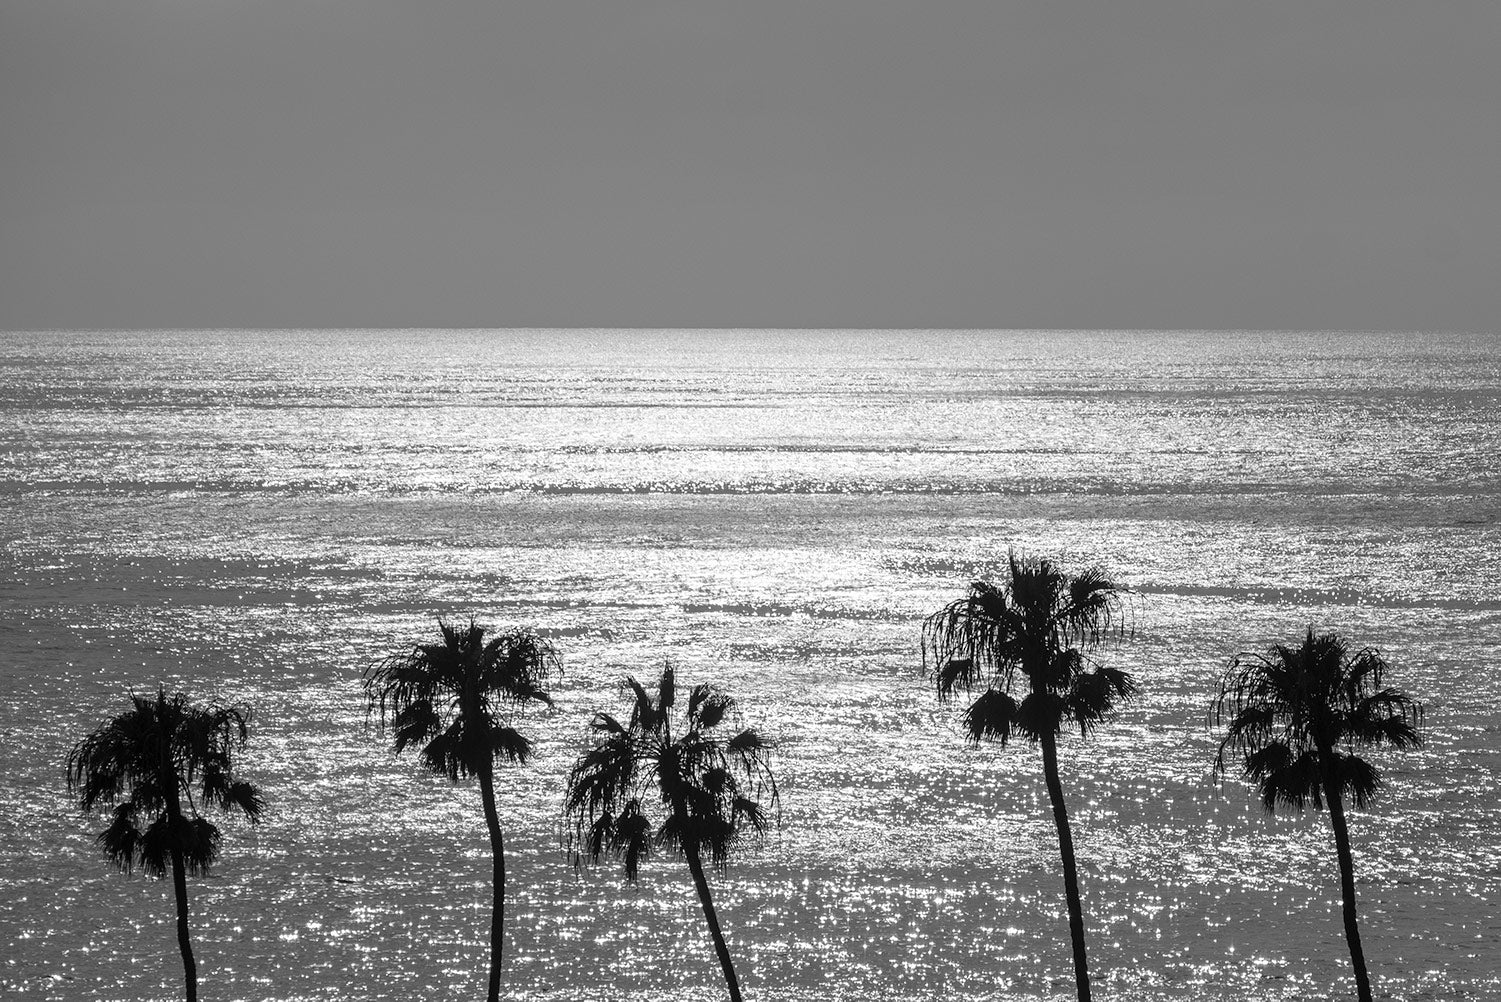 A silhouette monochrome of five palm trees in front of a sunlit sea at La Jolla, San Diego, California.